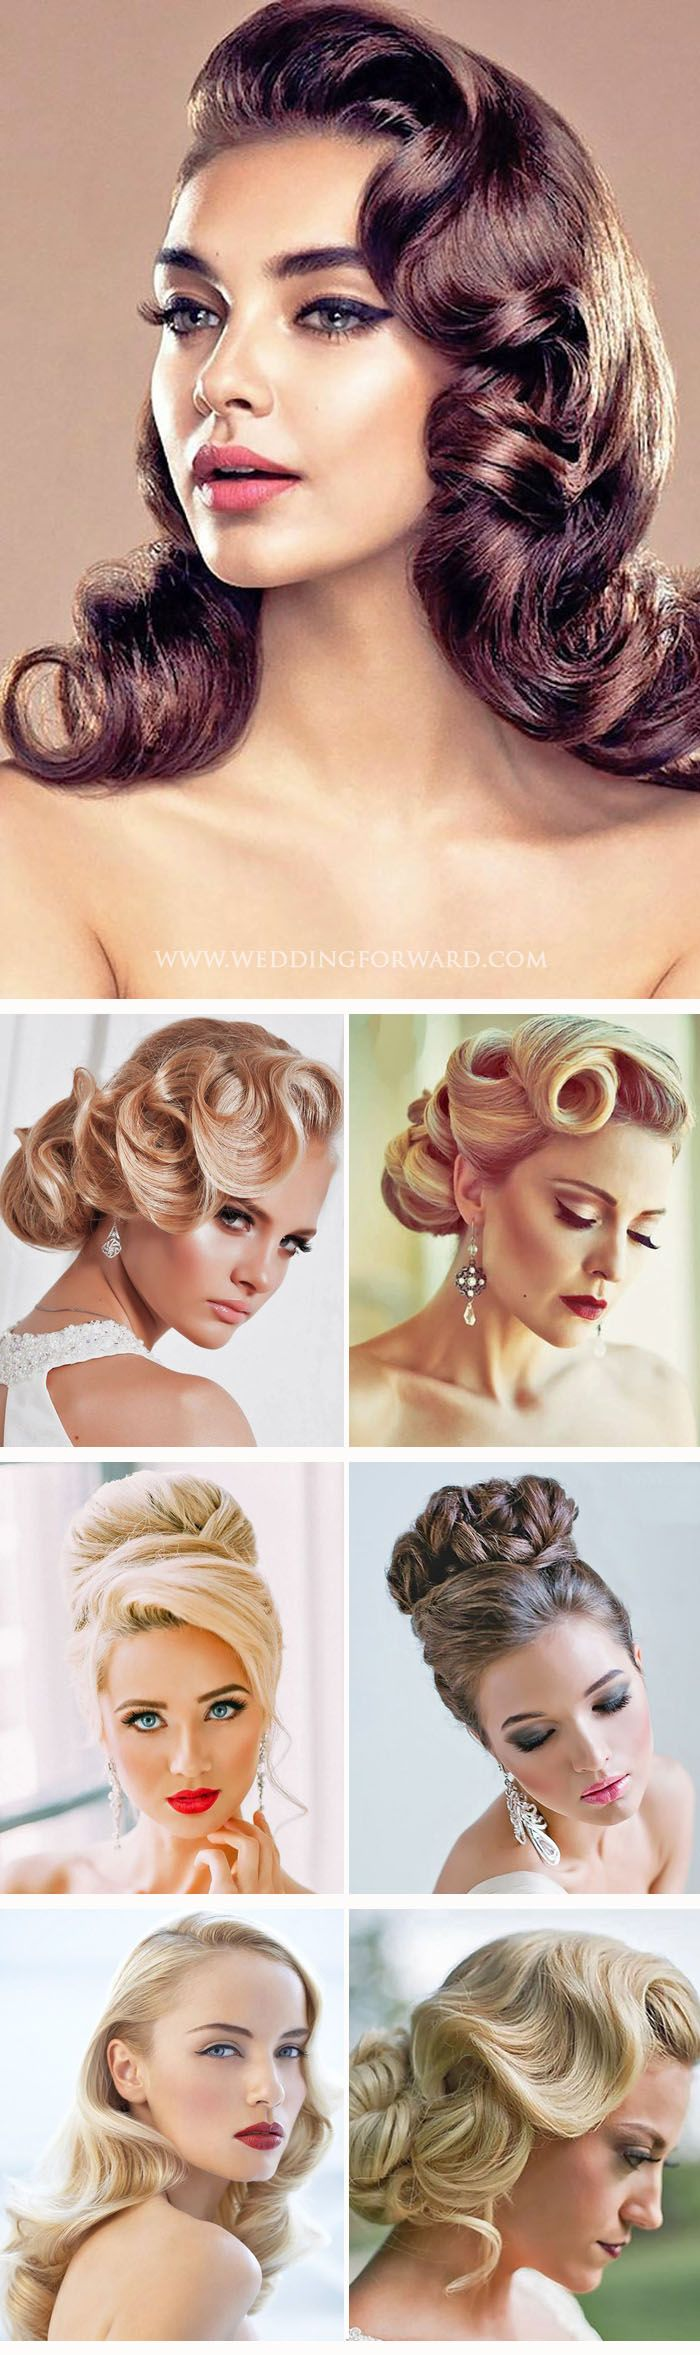 33 Utterly Gorgeous Vintage Wedding Hairstyles Peinados Hermosa Y